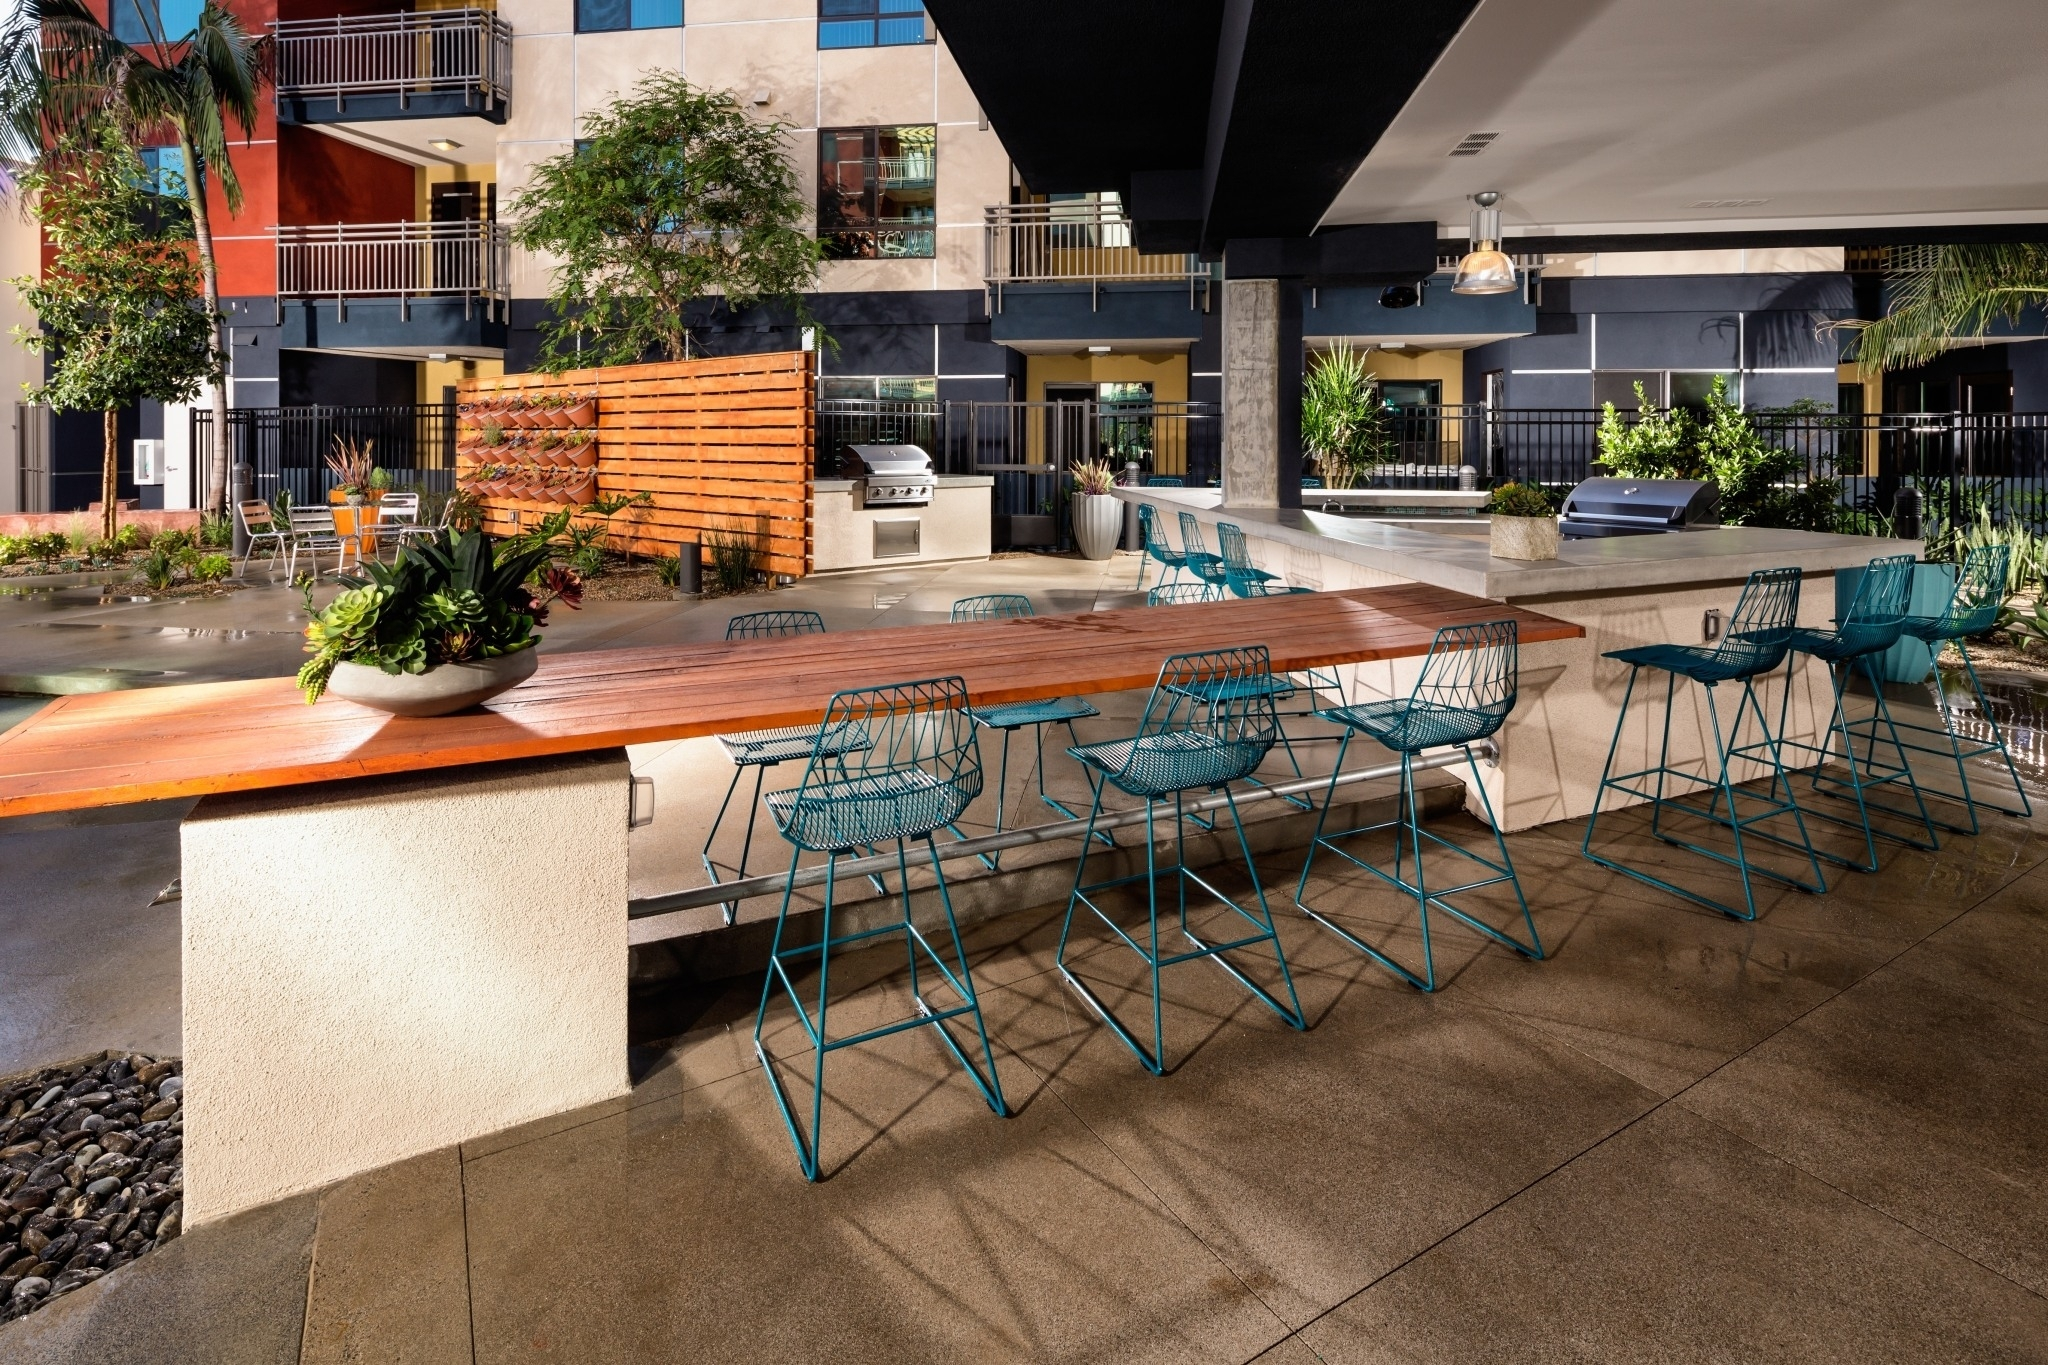 20 Best 2 Bedroom Apartments In Long Beach, Ca (With Pics)! throughout Best Apartment On Garden Walk Blvd Design Ideas